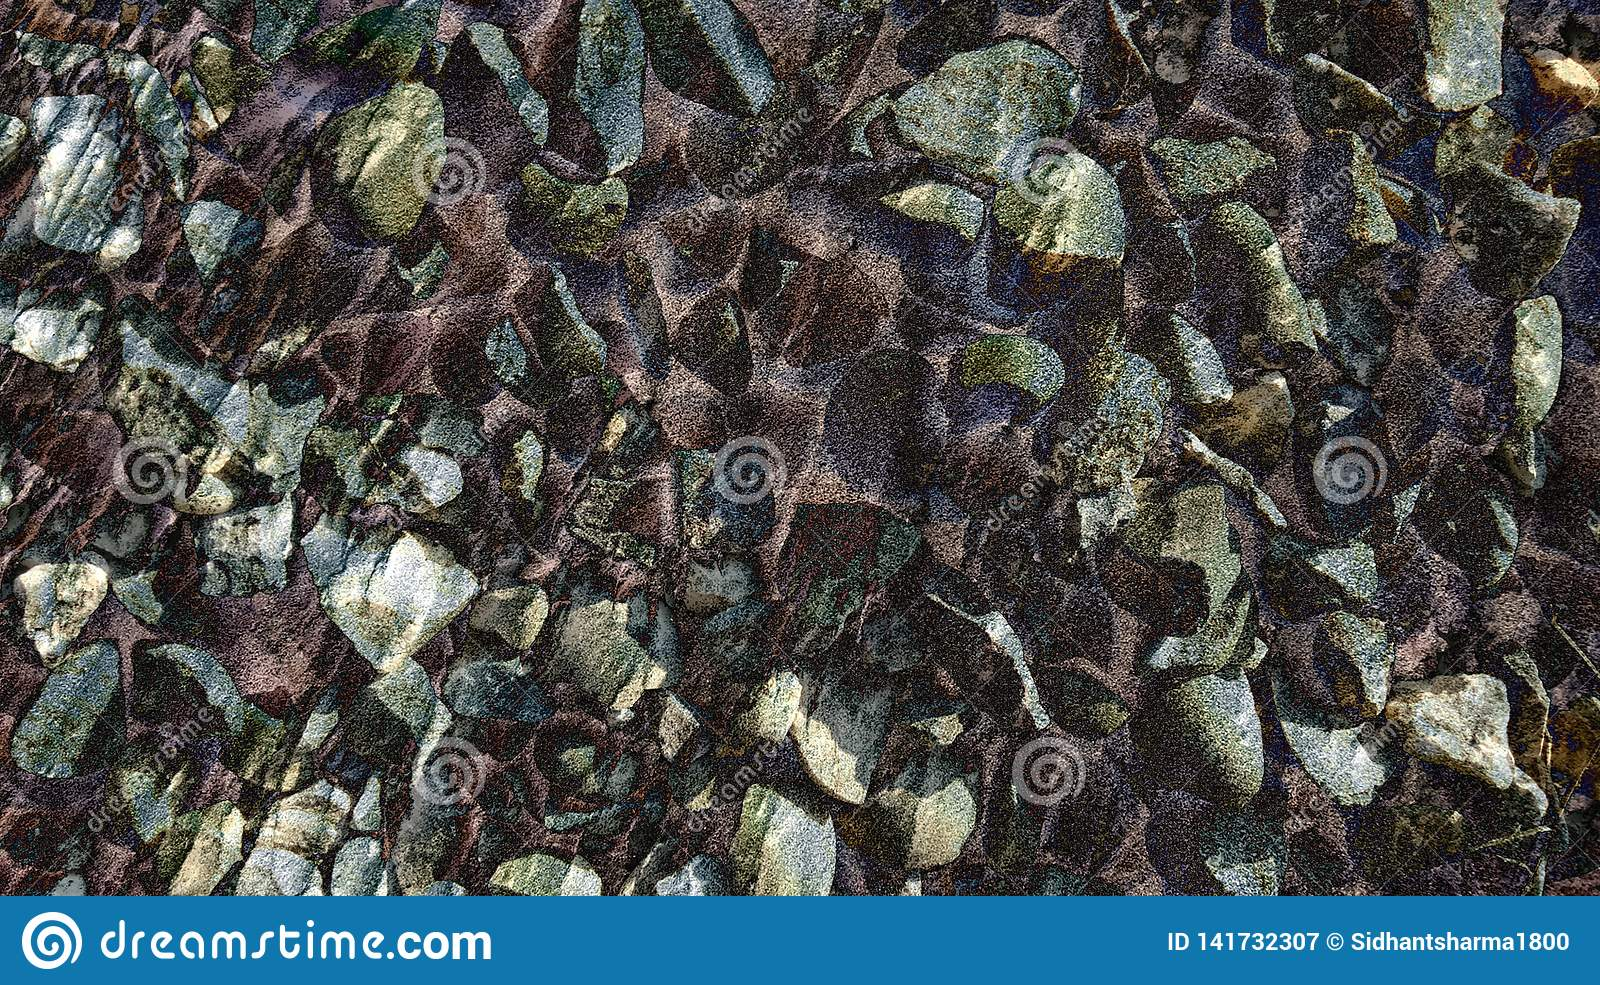 Abstract stone animated style stone texture with background wallpaper.